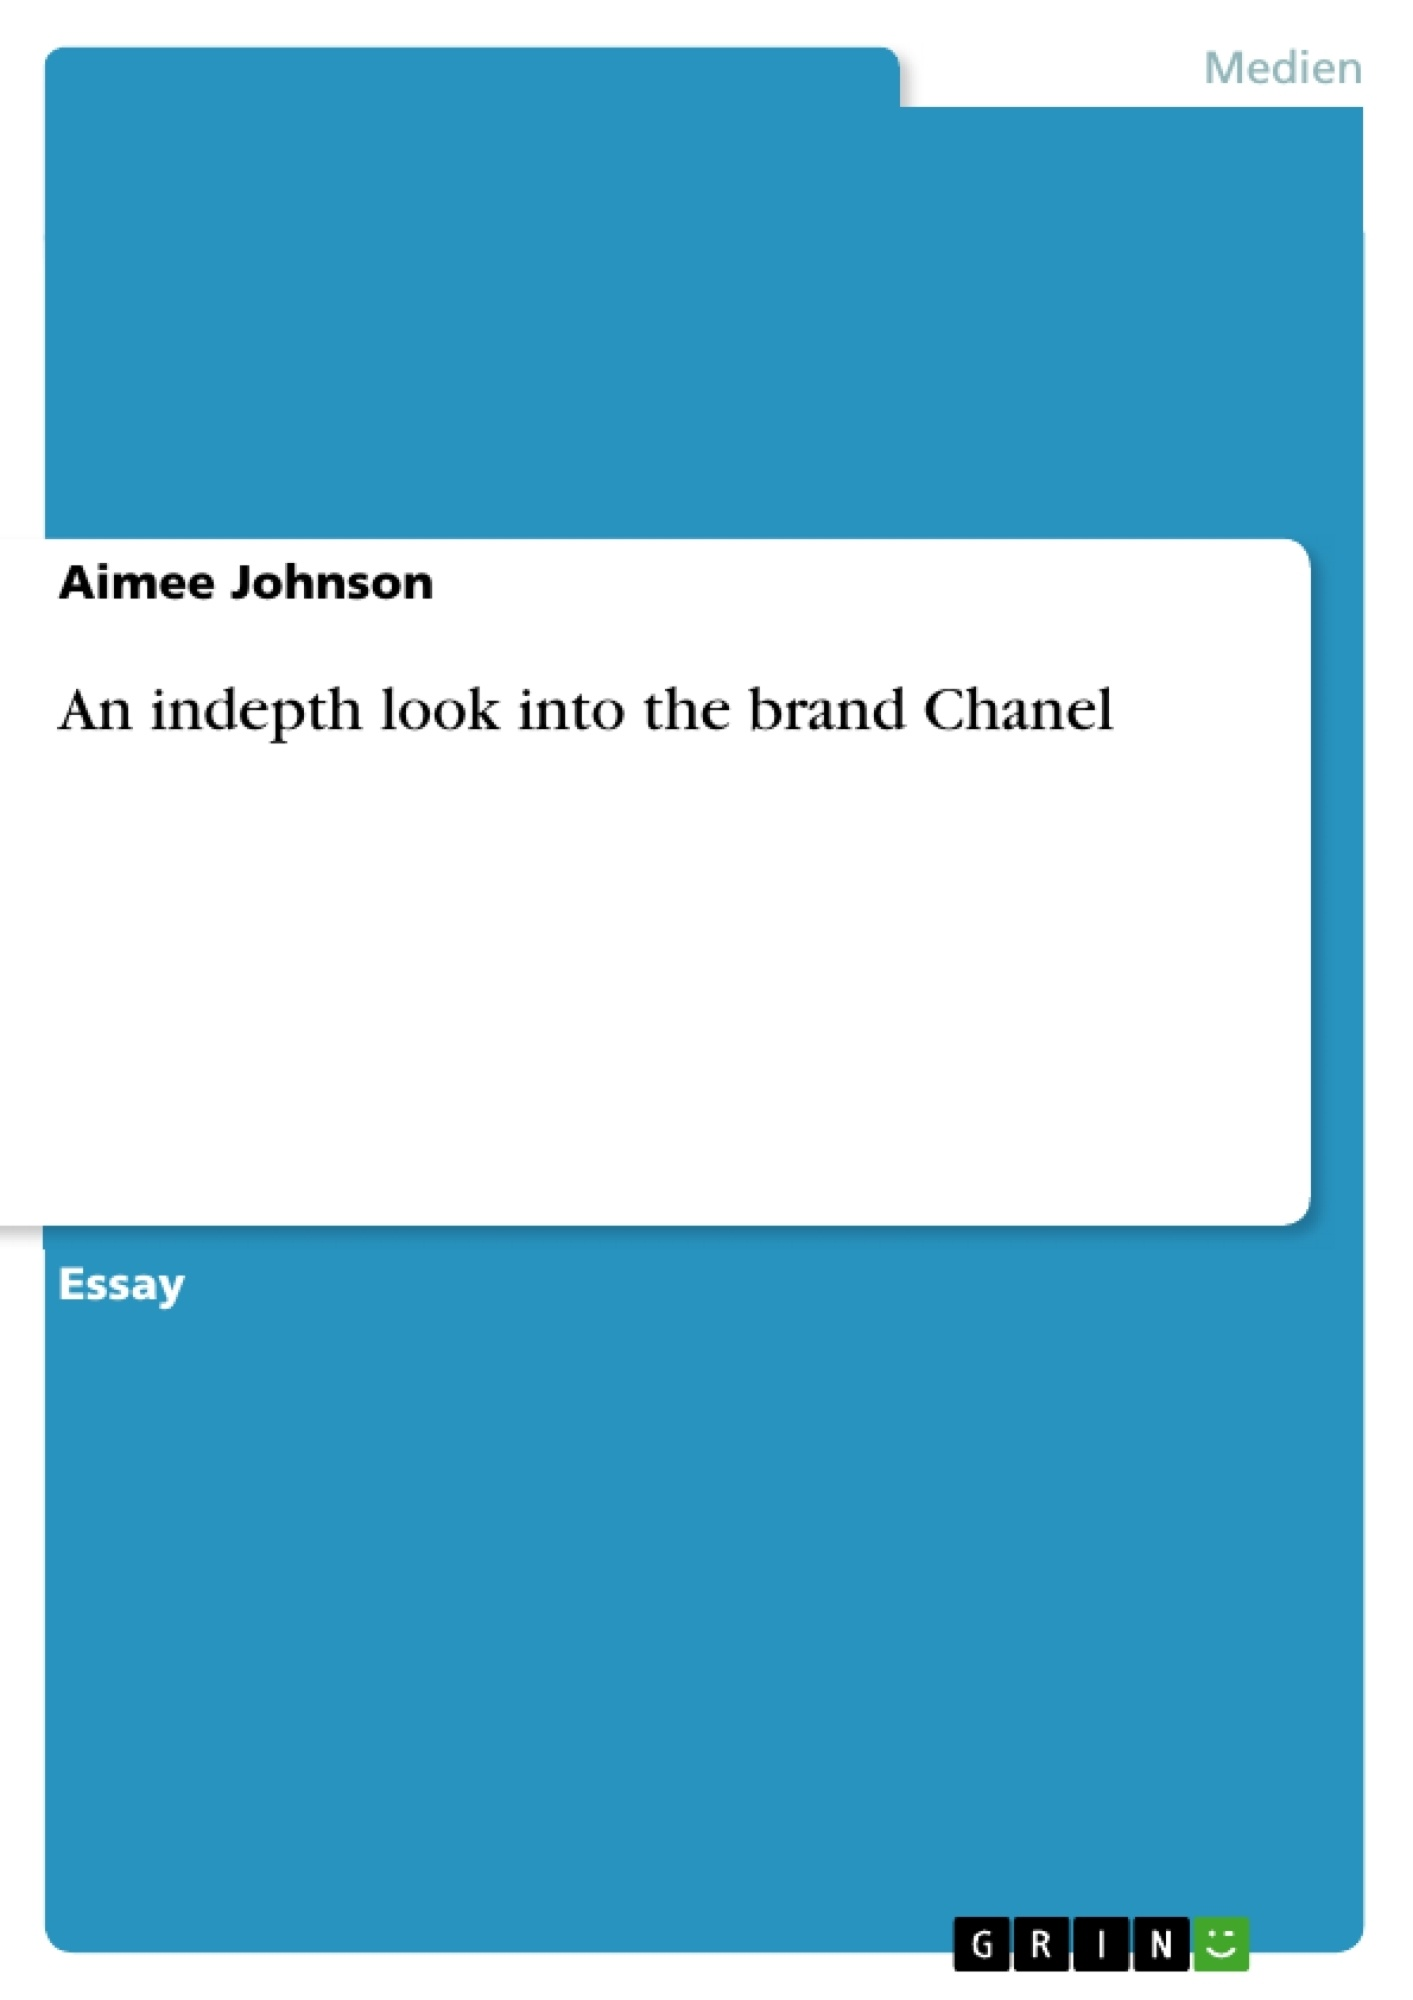 Titel: An indepth look into the brand Chanel